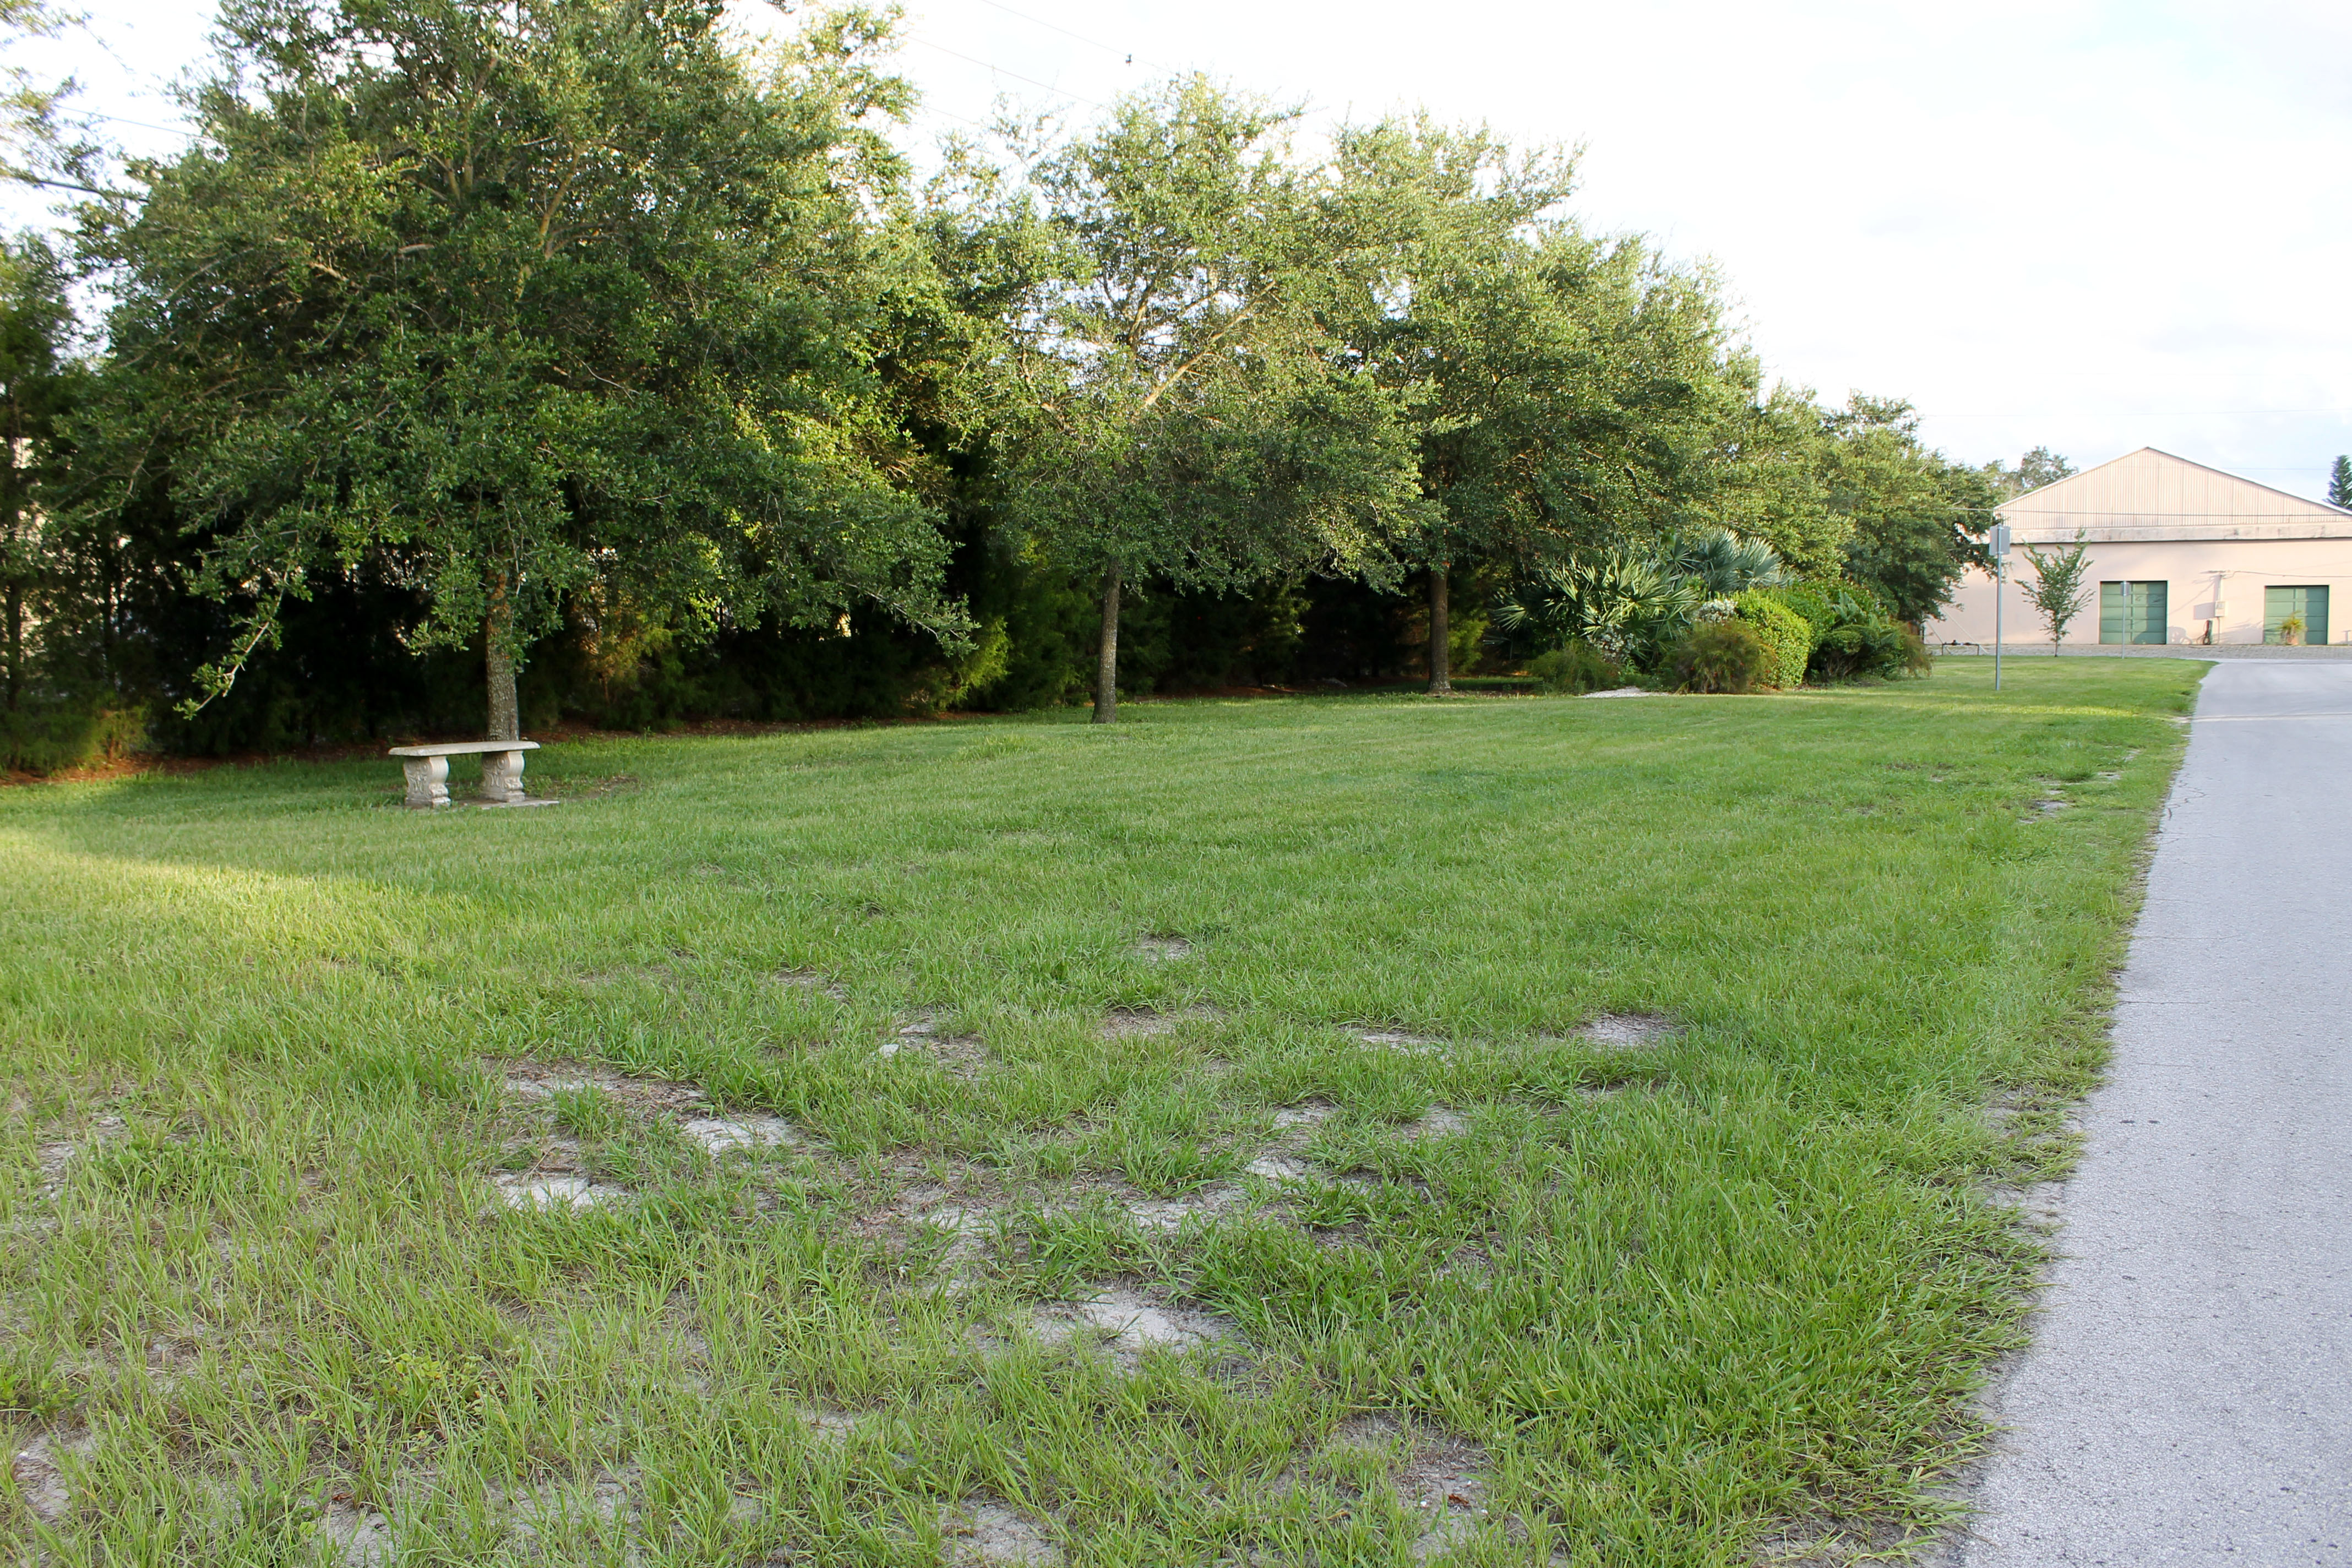 Open, grassy space in Wildwood Park with a concrete bench in the middle